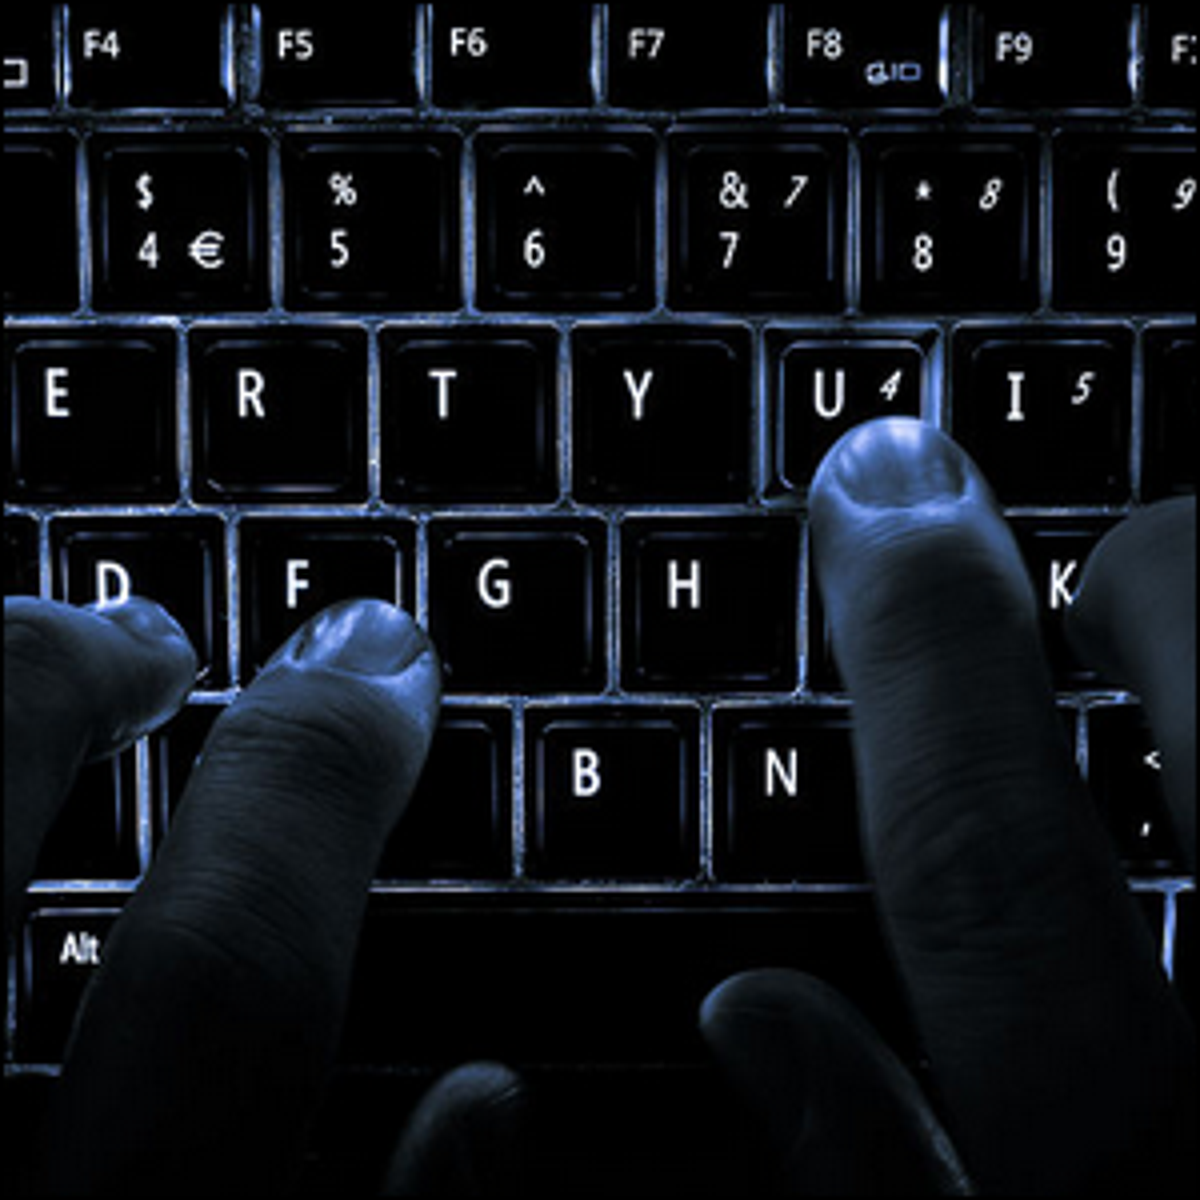 Fingers typing on a backlit keyboard.